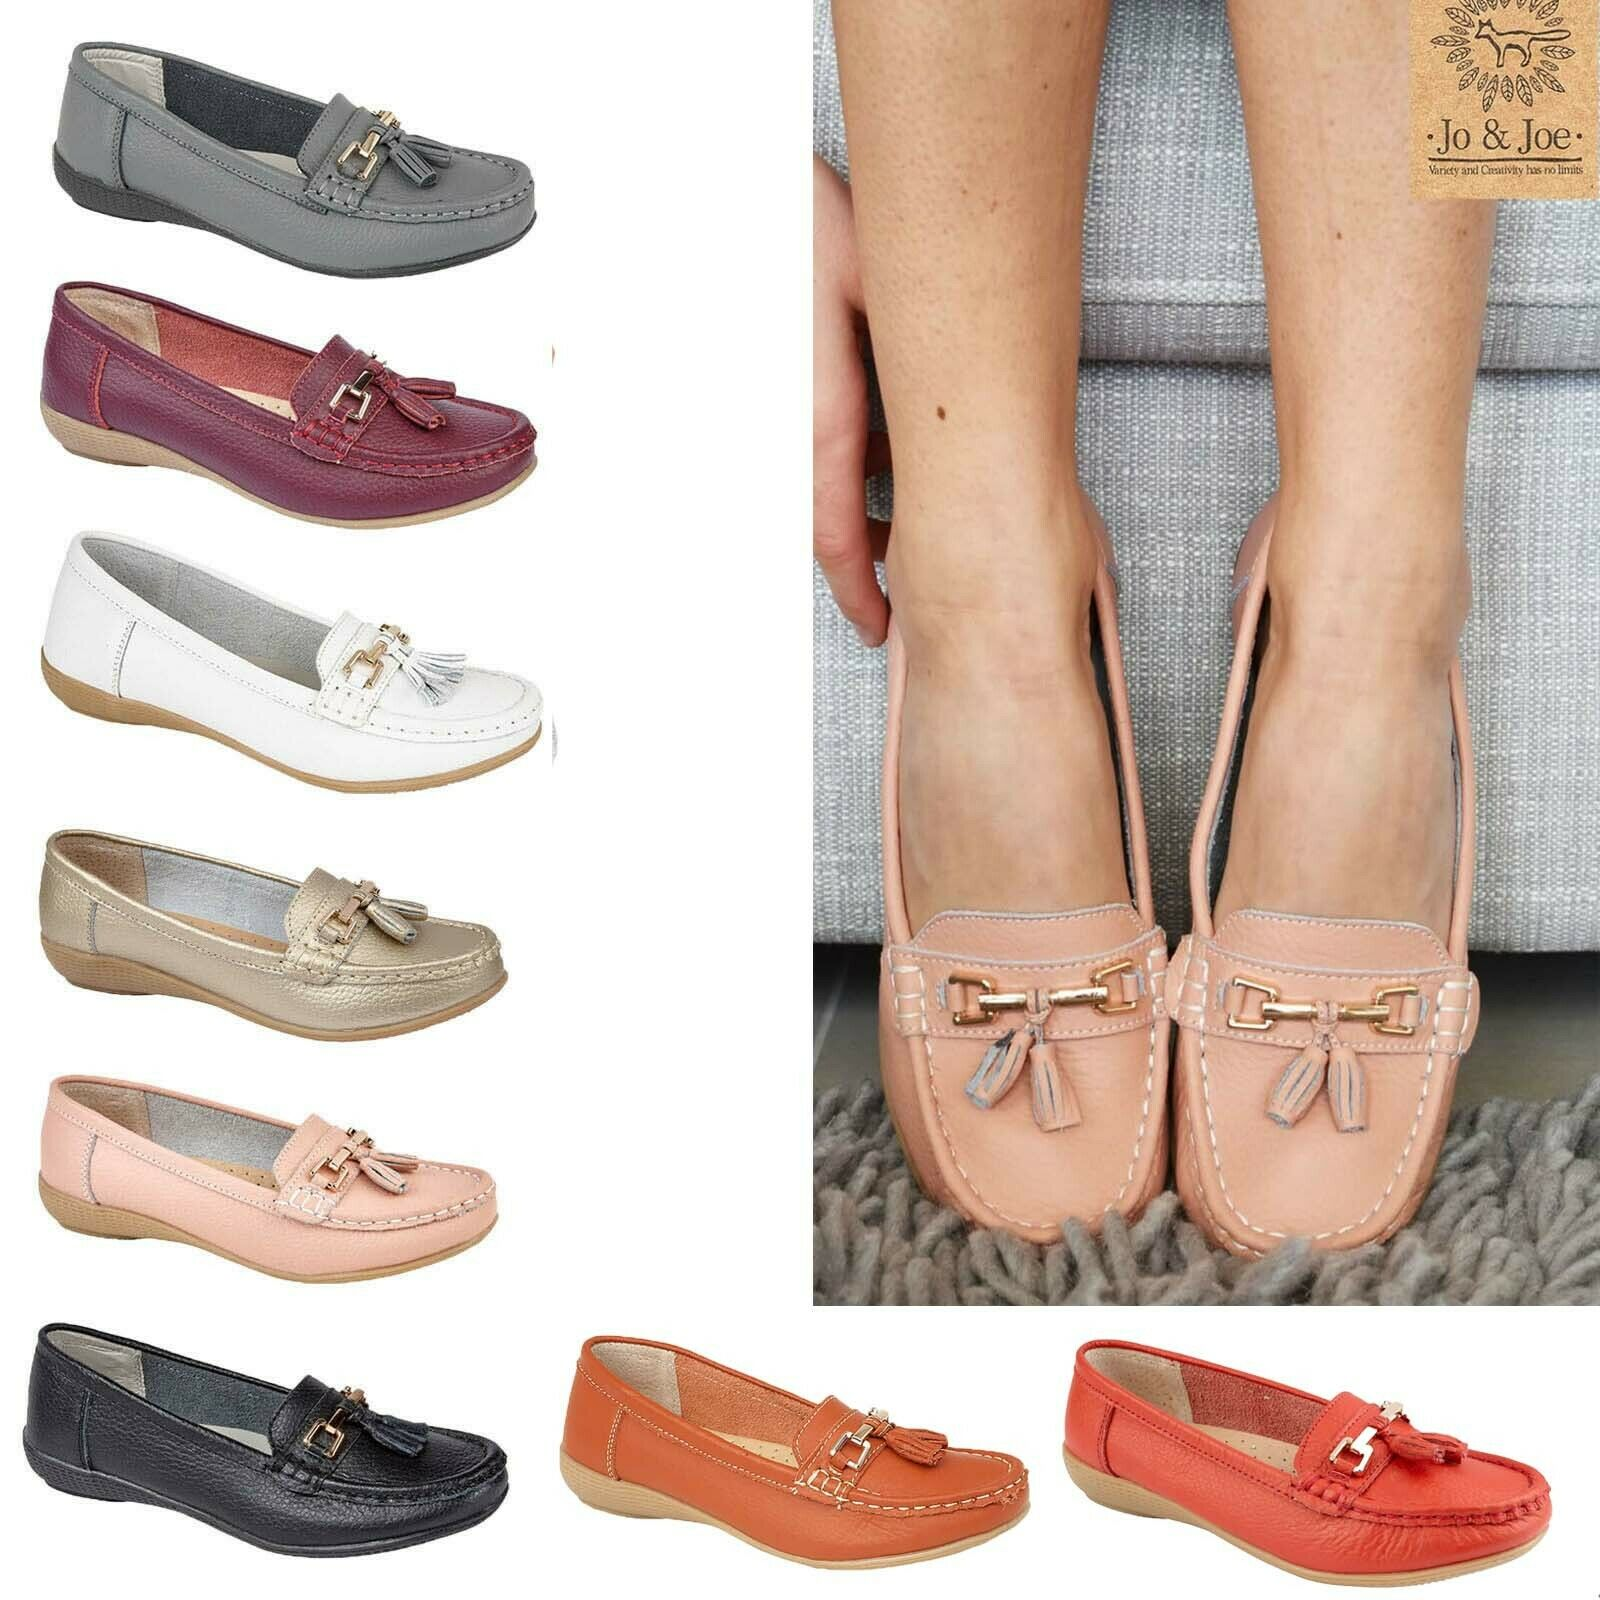 Ladies Pumps Loafers Womens Flat Casual Comfort Office Work School Shoes Sz 3-8